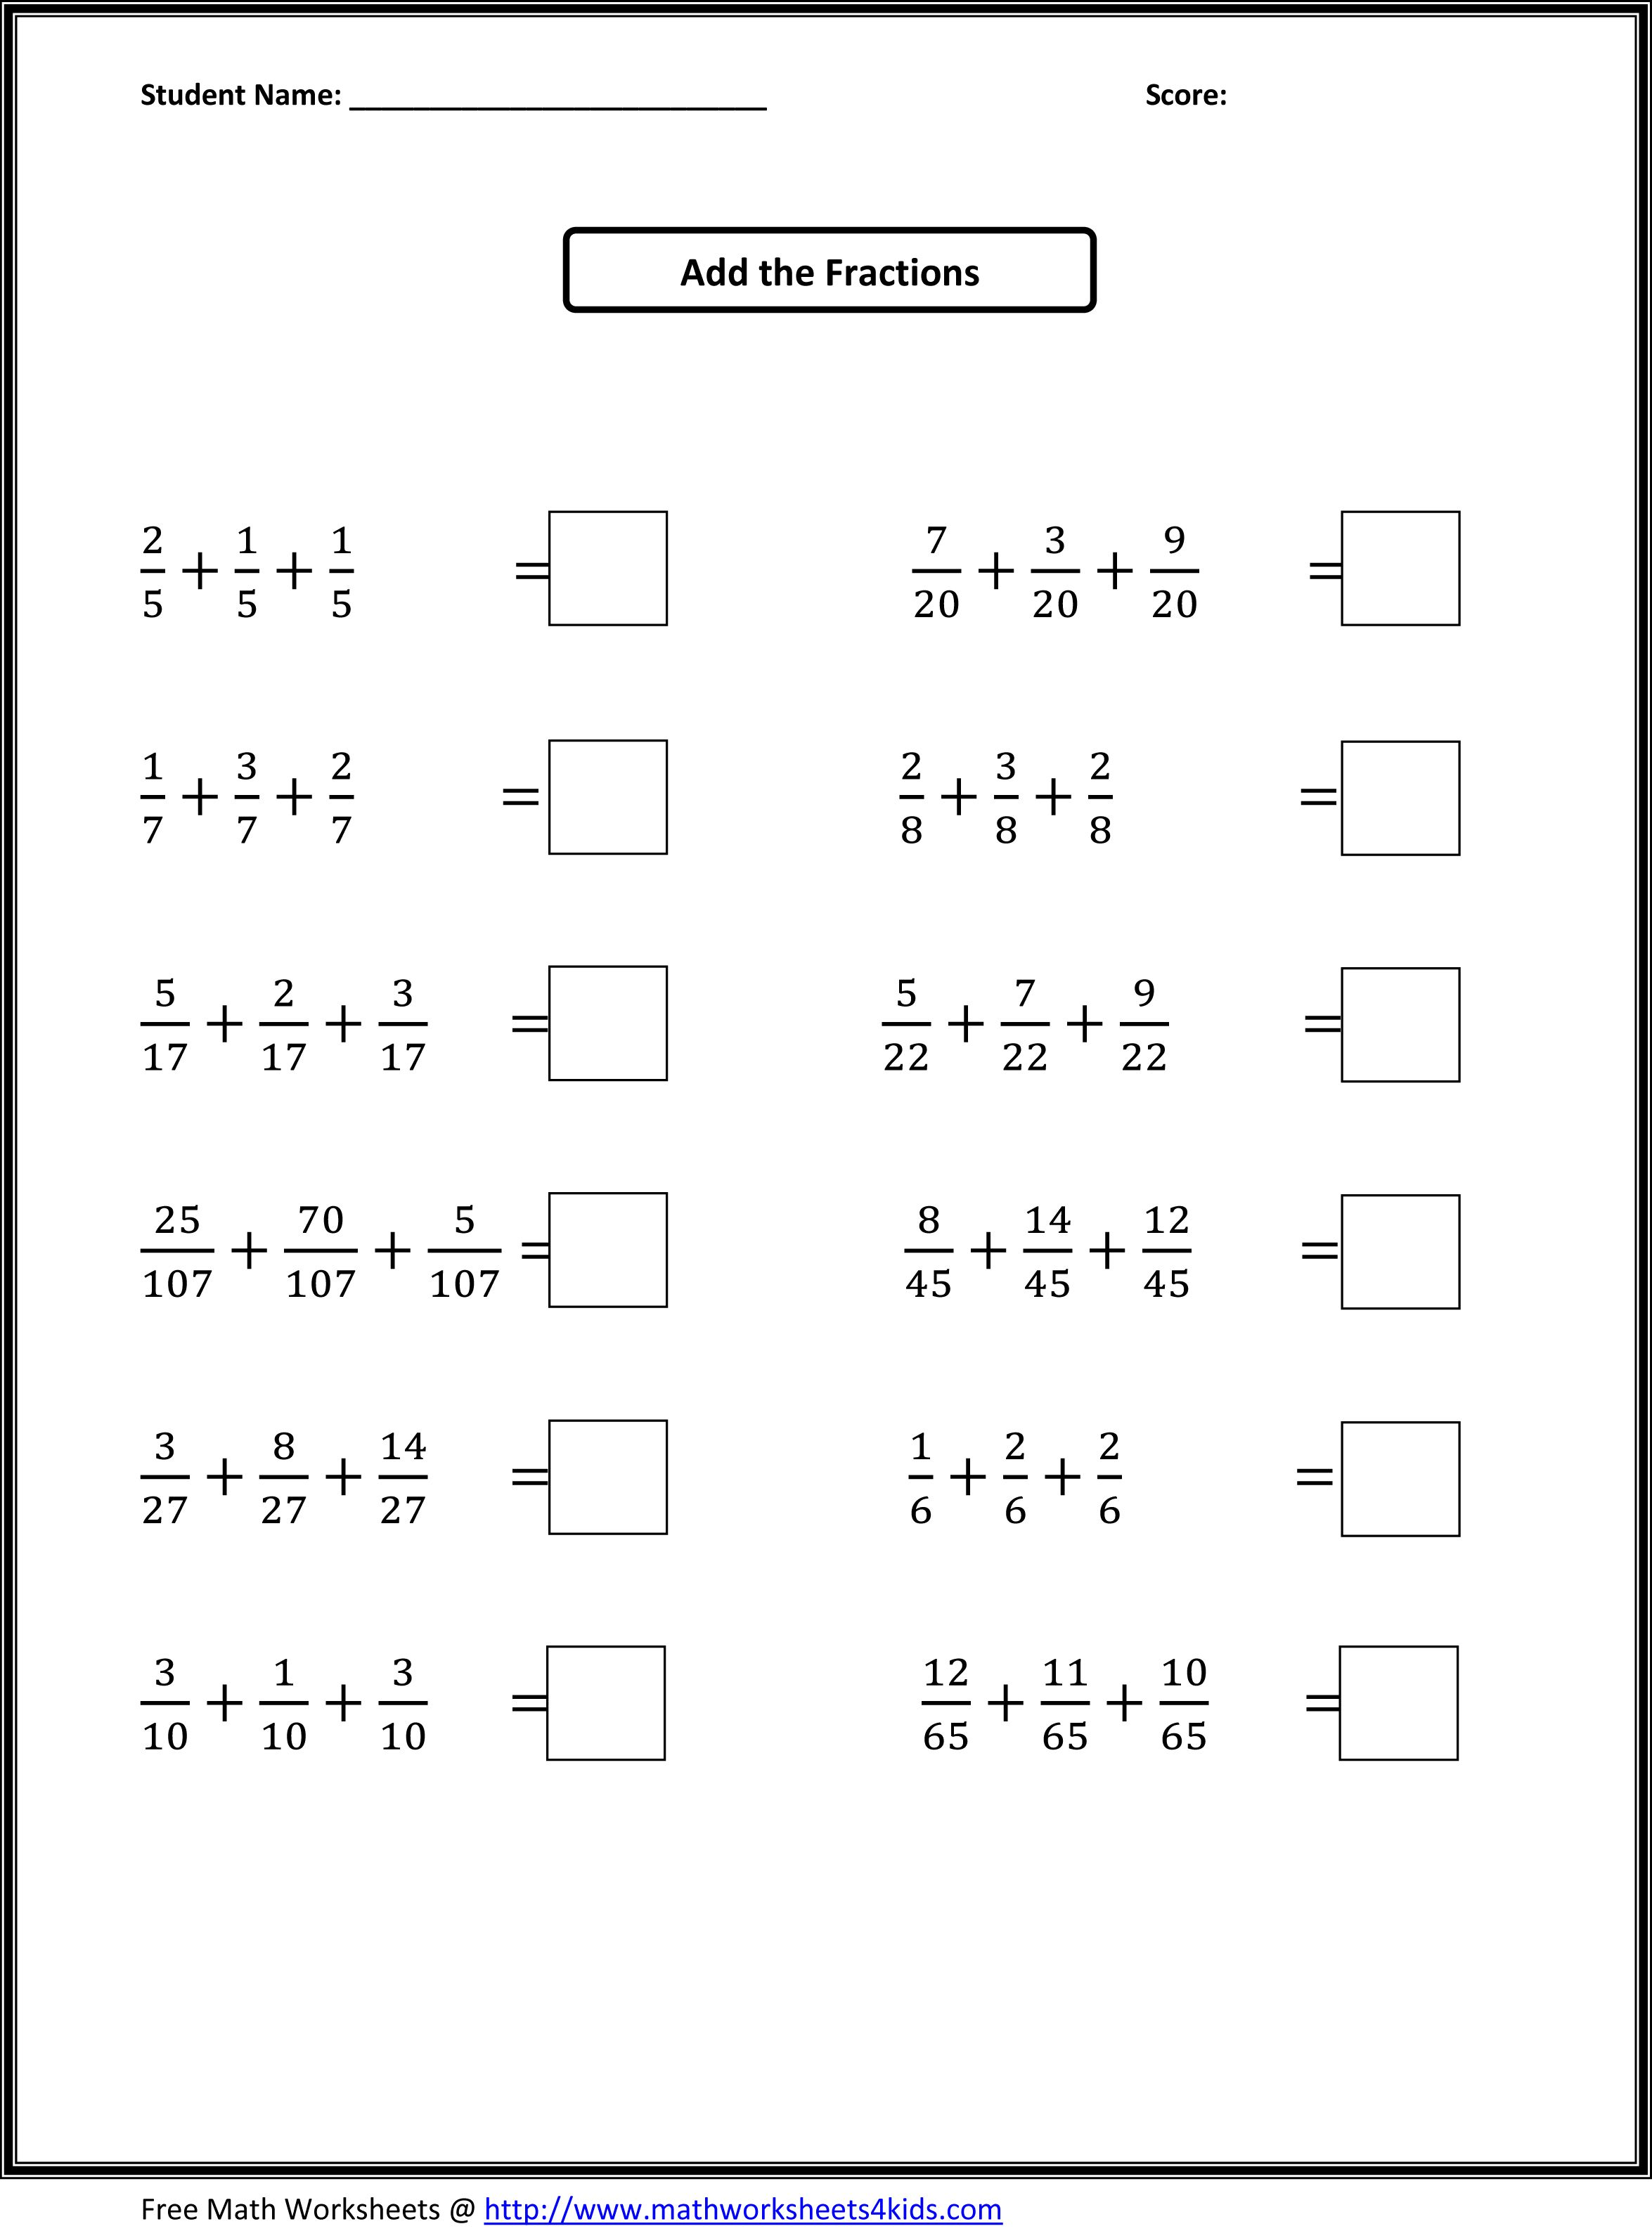 Worksheets Math Worksheet Grade 4 printable grade 4 math worksheets coffemix for delwfg com